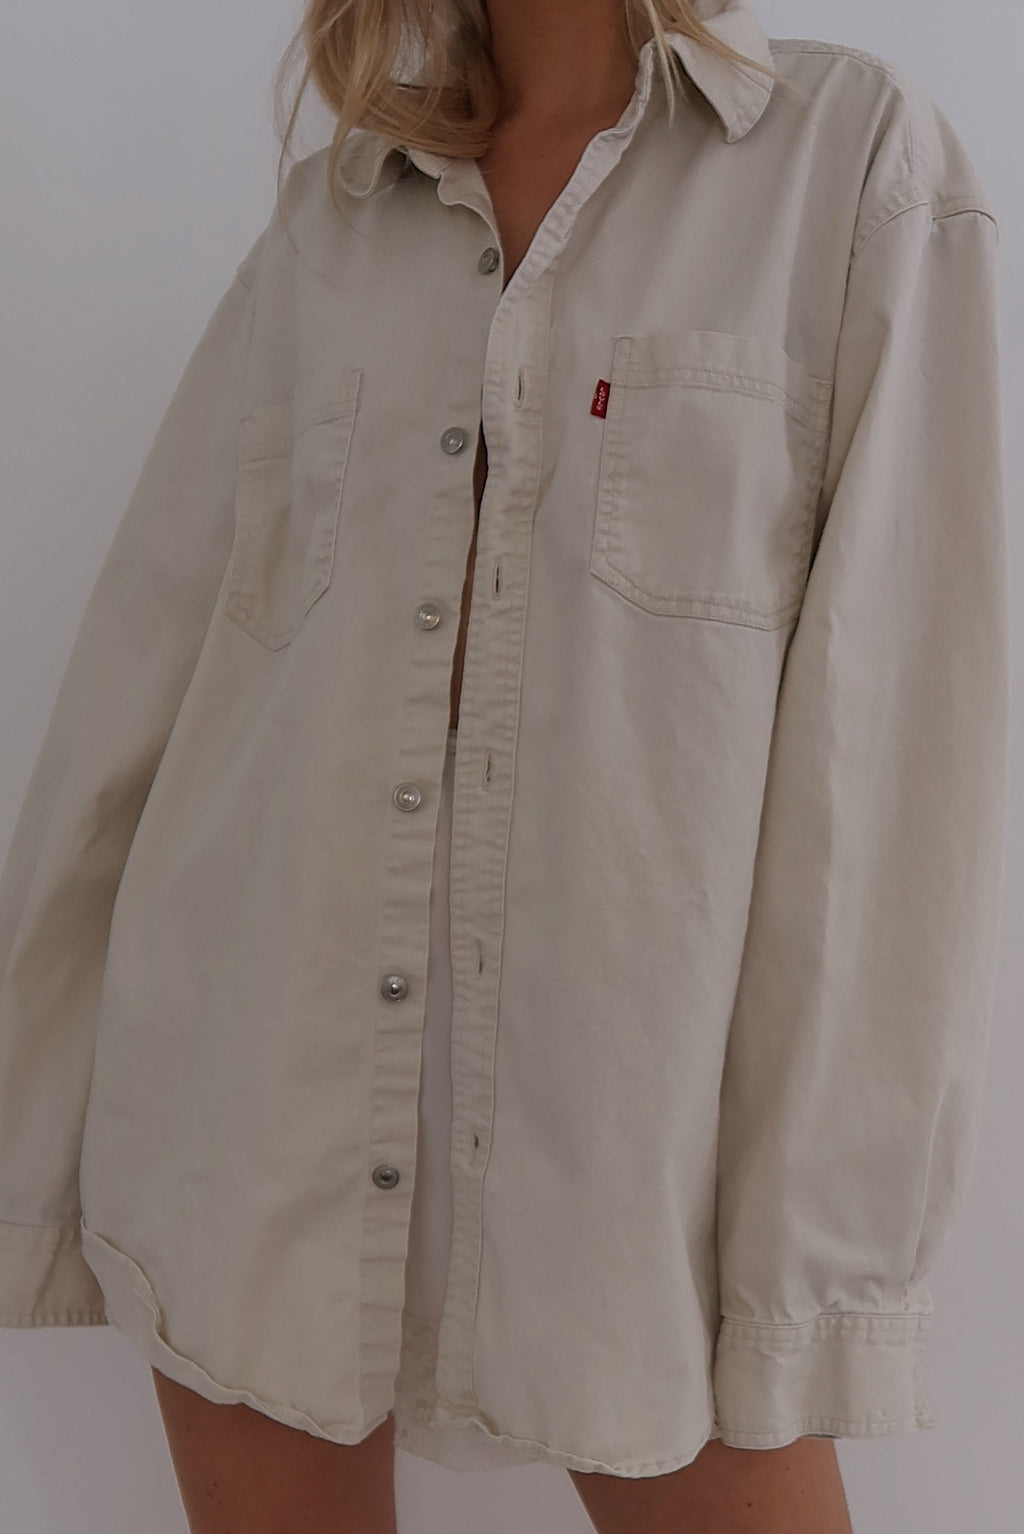 Levi's Button Up (S-L)